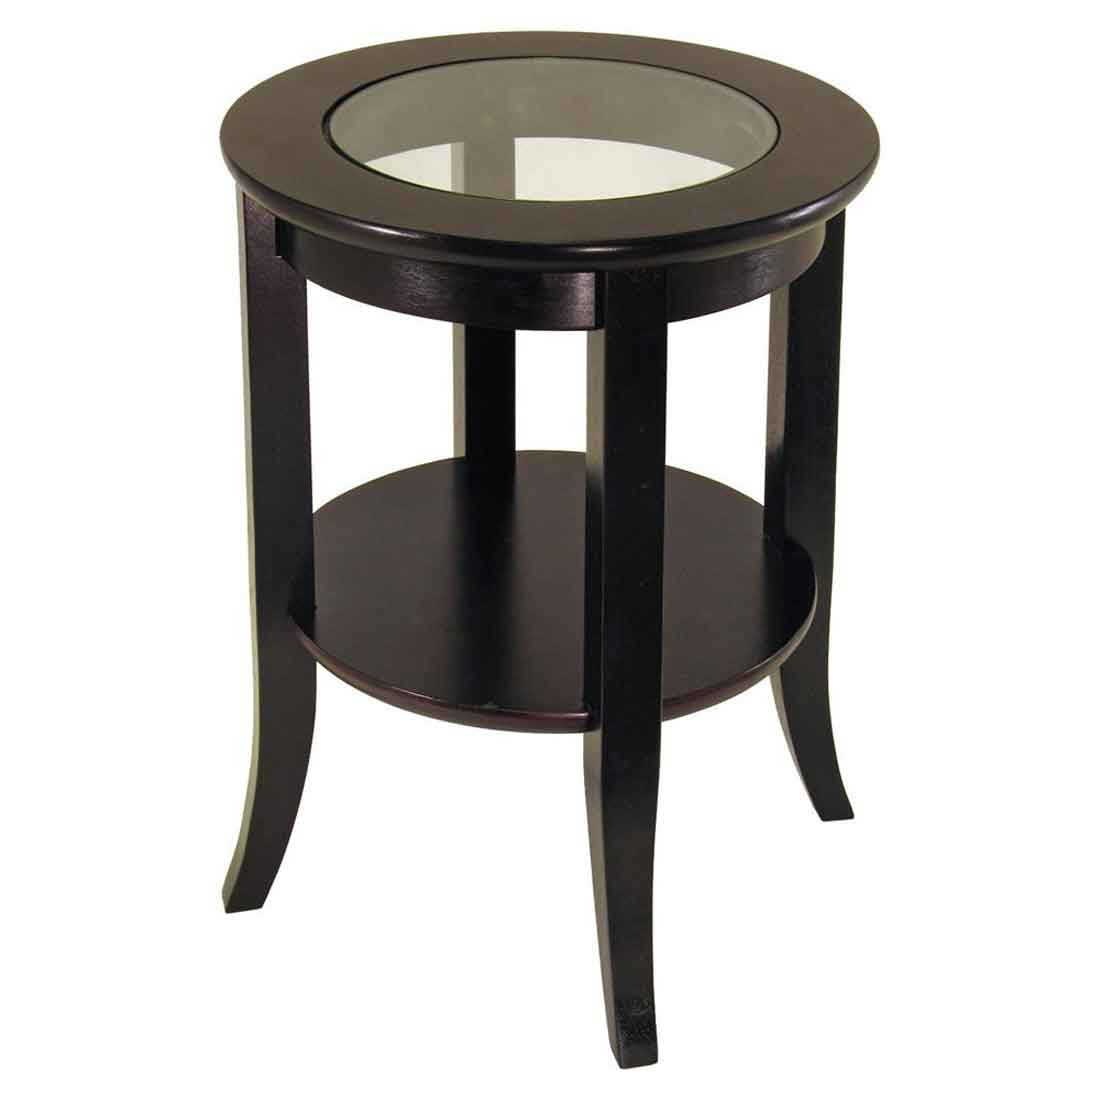 dining bulk decorating gloss rattan ideas glass placemats circle plastic chairs for accent cover marble small patio pub and kitchen covers table black paper hig tablecloth granite